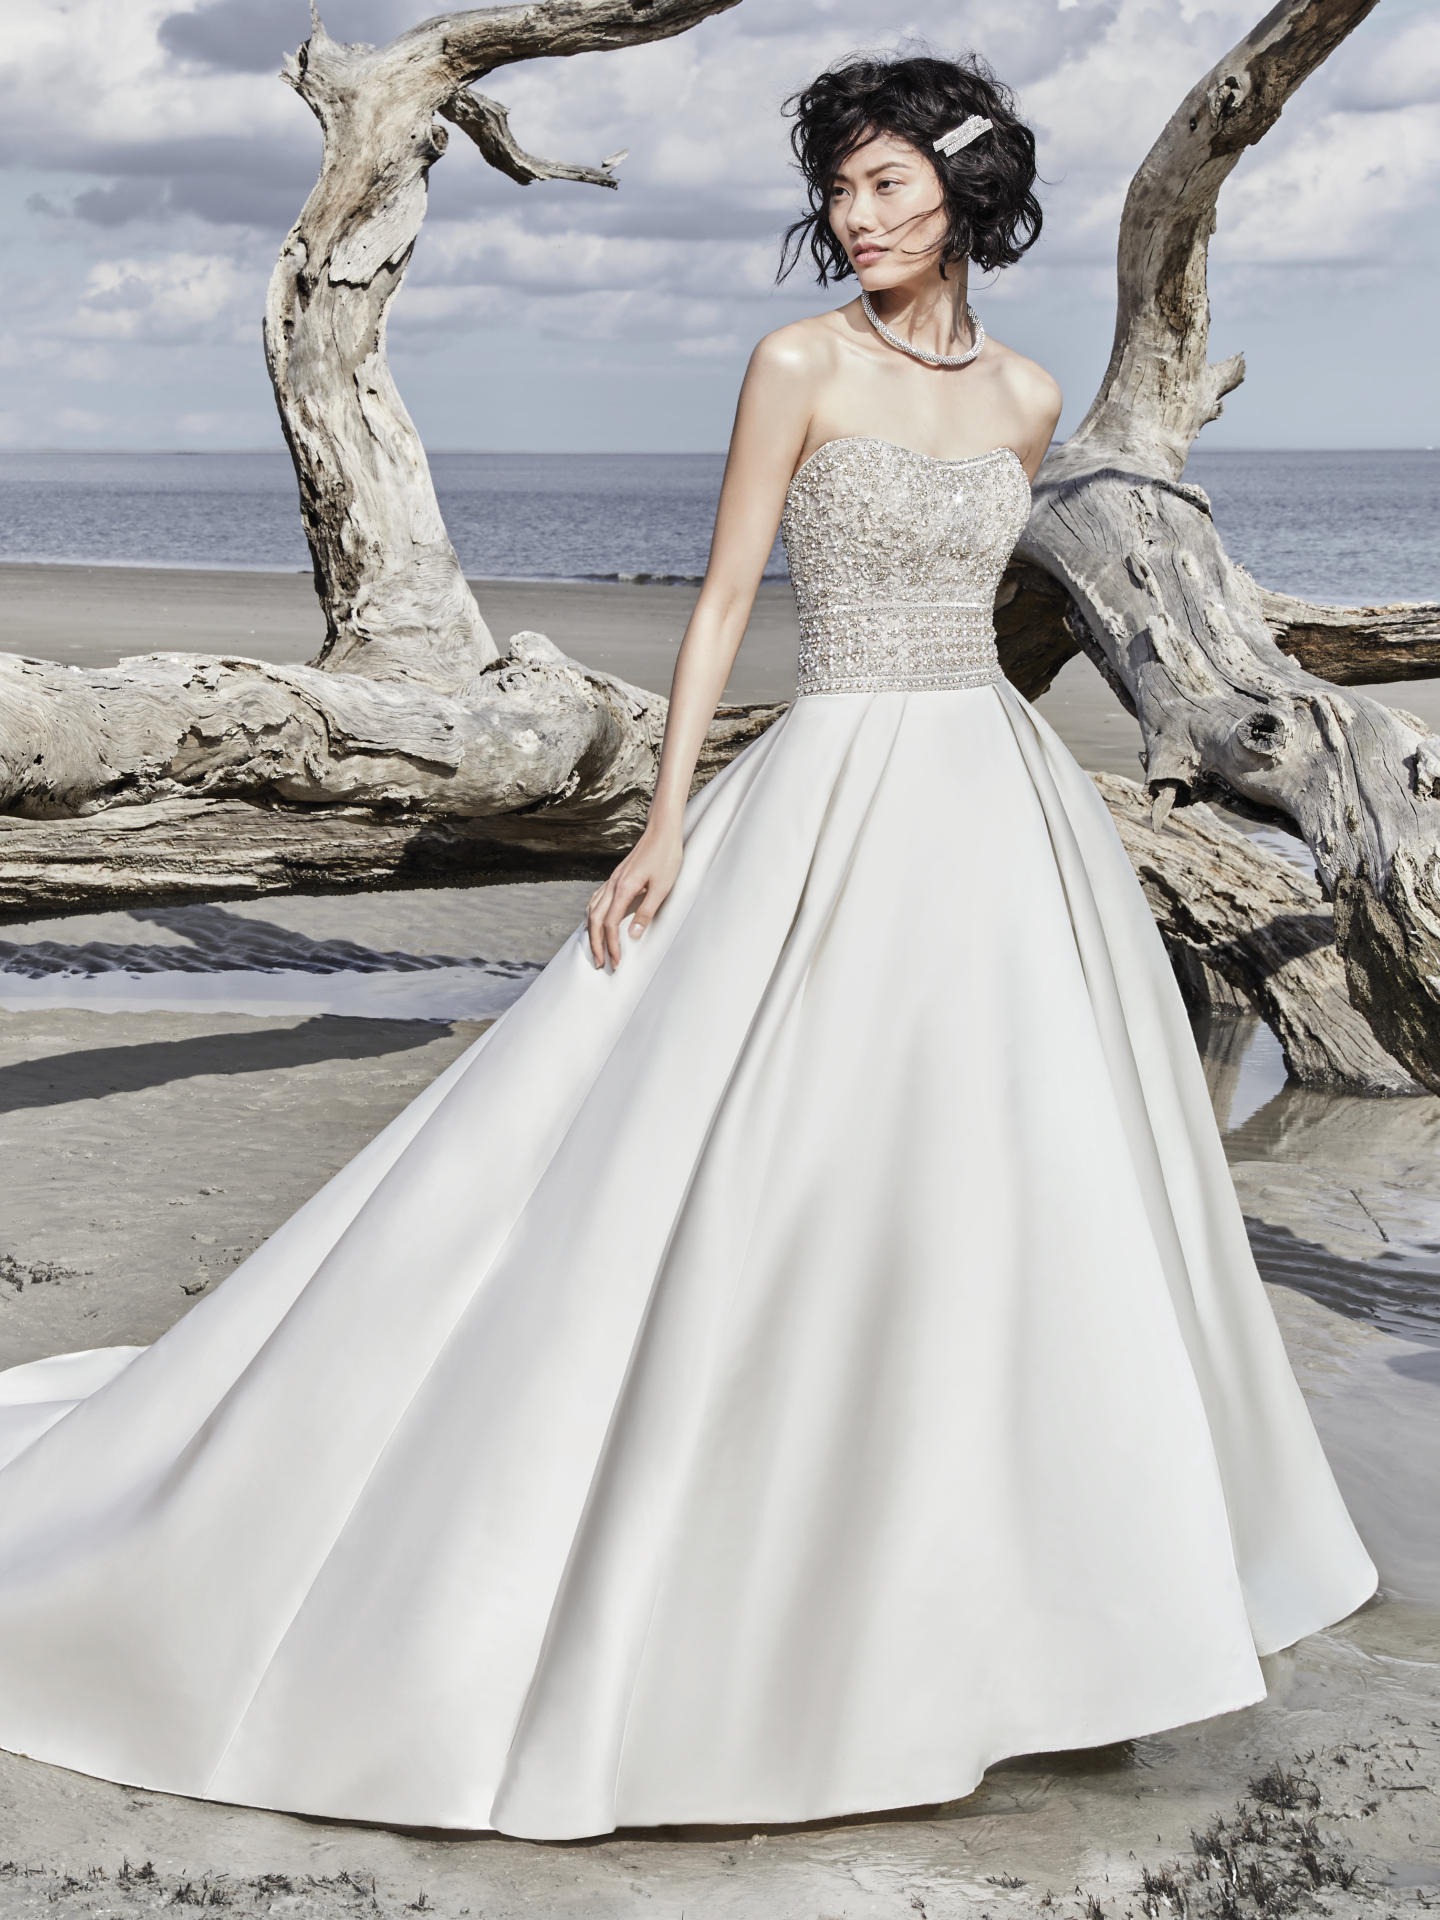 Phoenix by Sottero and Midgley. An elegant princess wedding dress with unique touches, this Carlo Satin ballgown features a bodice of beaded embroidery and Swarovski crystals. Complete with strapless scoop neckline. Finished with crystal buttons trailing from zipper to hemline. Princess Ballgowns For Royal Weddings